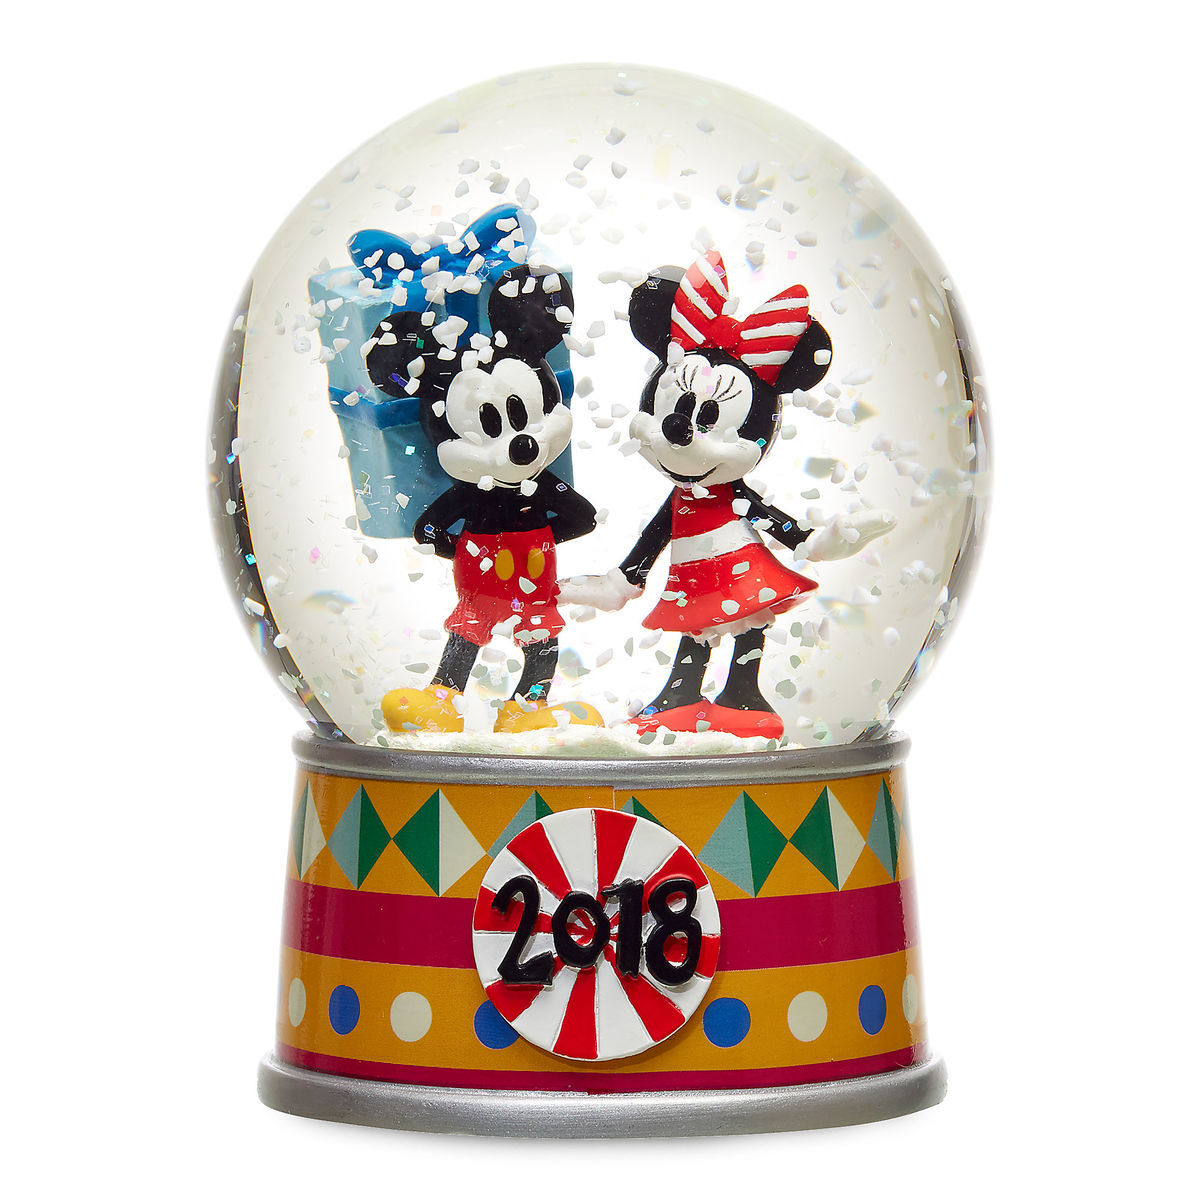 645eb93a2b1a Mickey and Minnie Mouse Holiday Snowglobe 2018